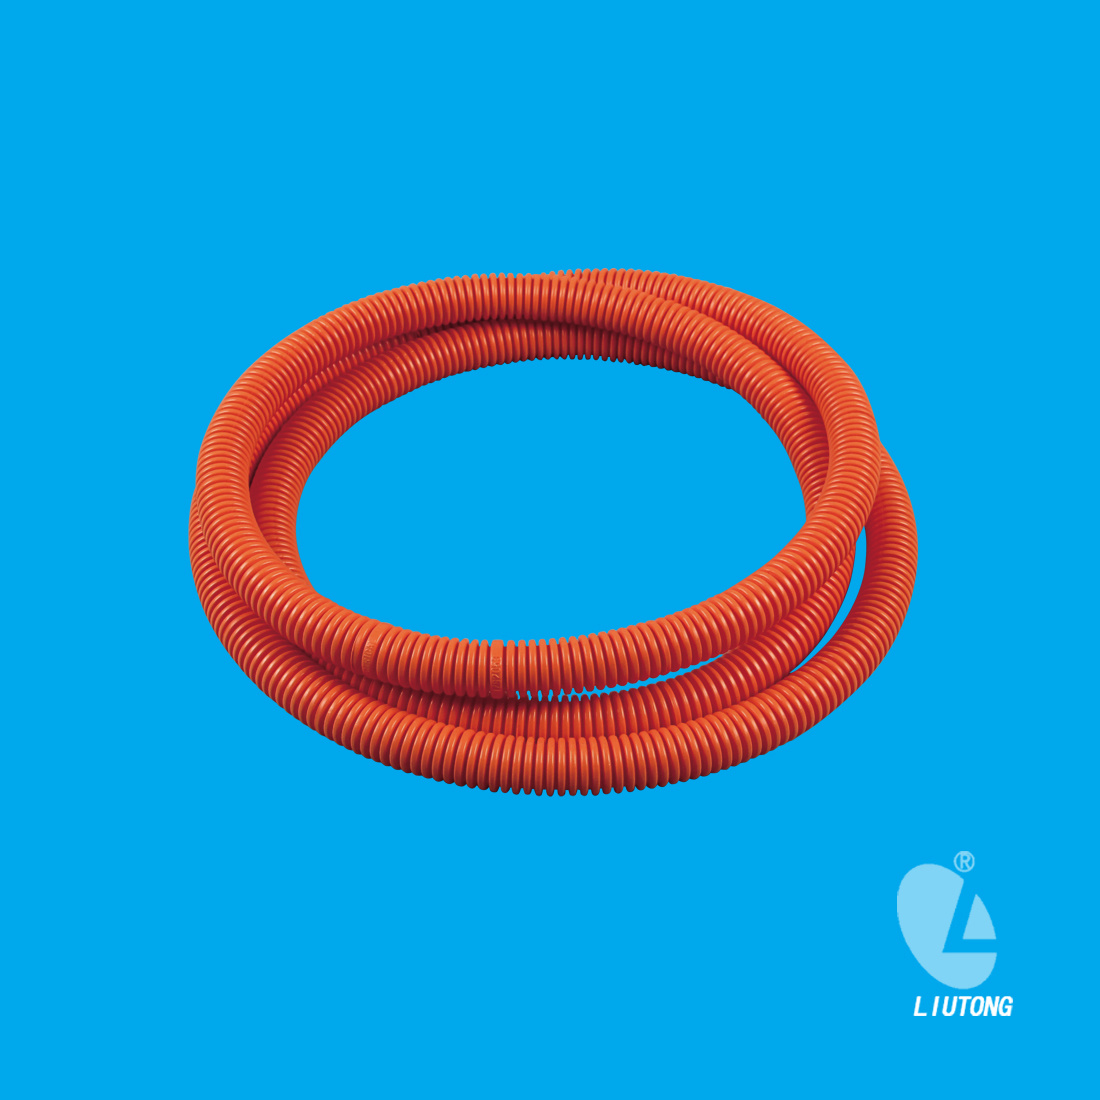 China Pvc Corrugated Flexible Pipe Md Hd Wire Pipes Electrical Conduit Pipespvc Conduitpvc